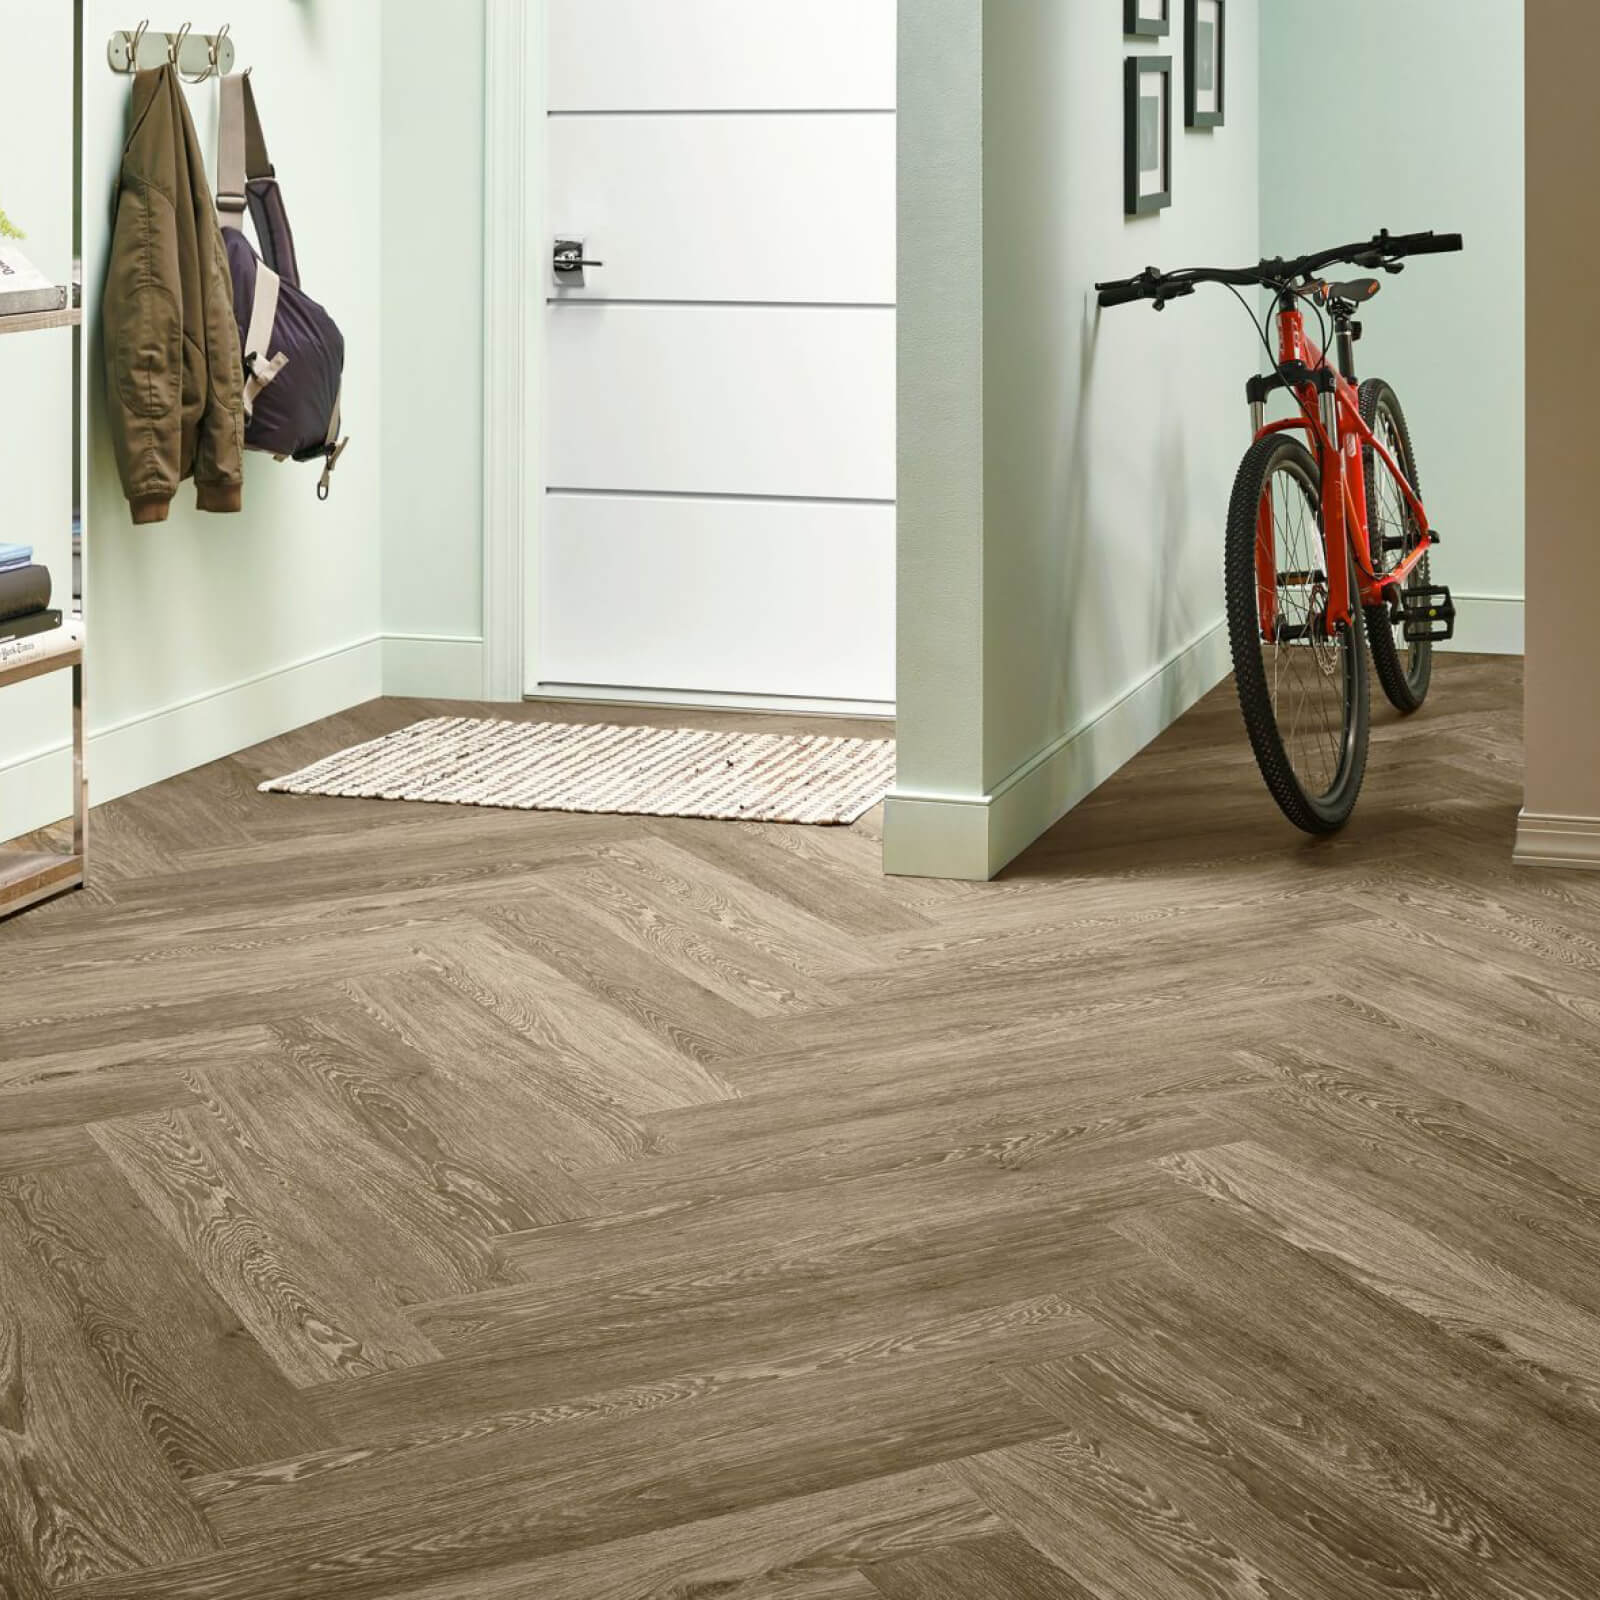 Stylish Vinyl Flooring Looks for Any Room in Your Home